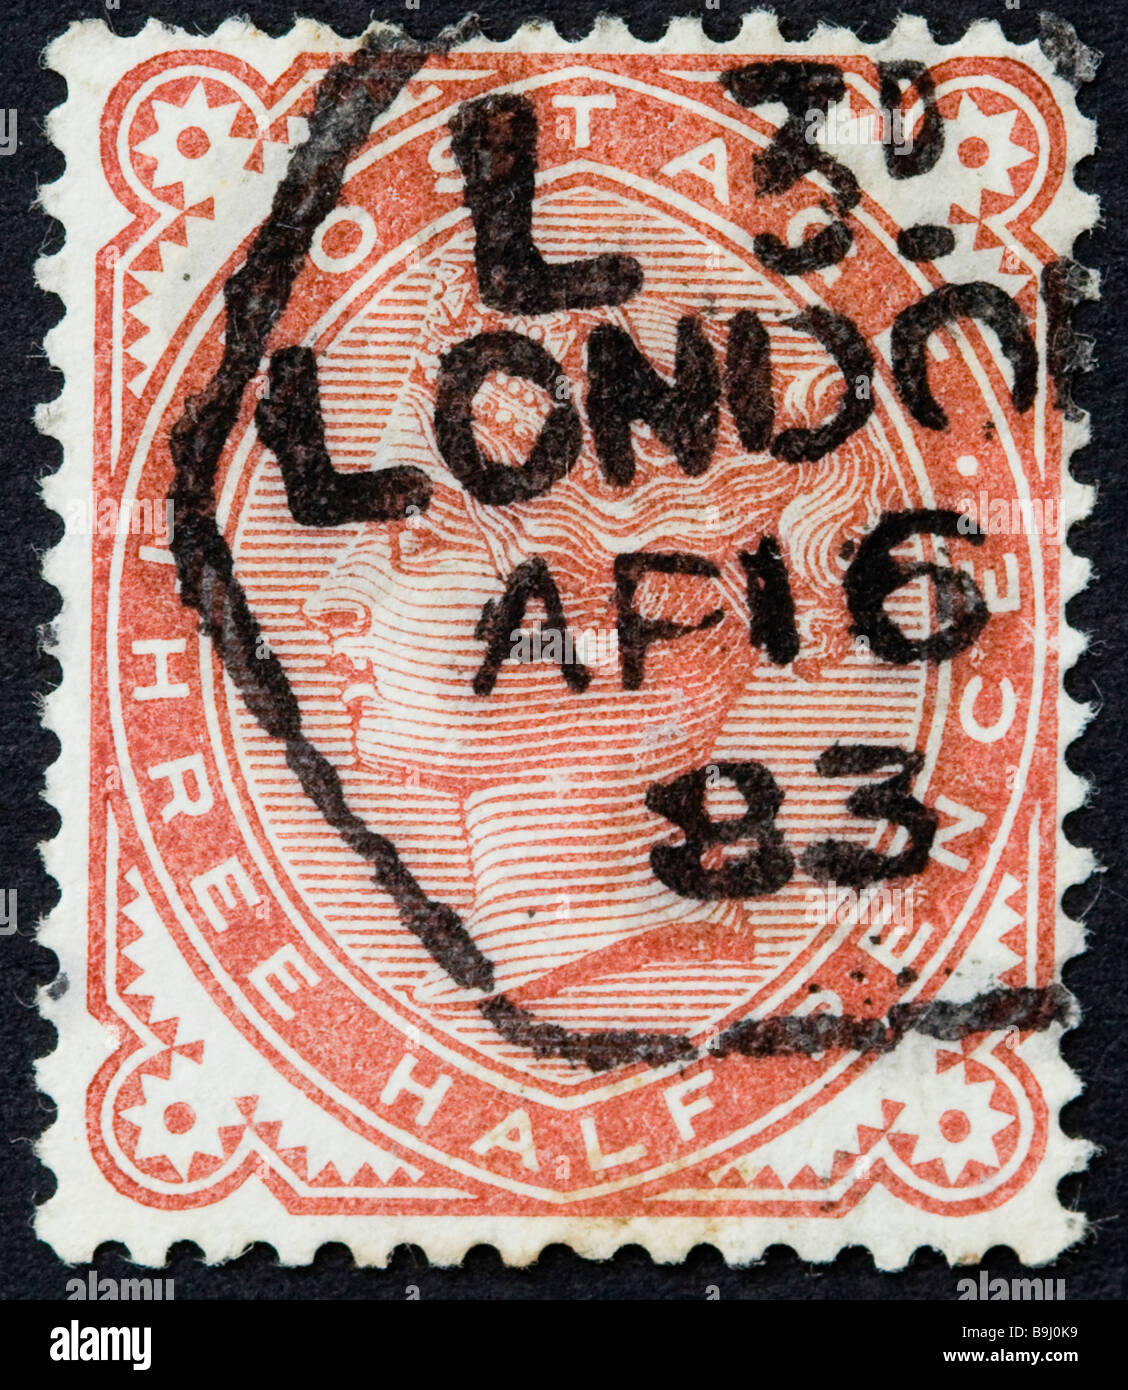 Victorian British postage stamp, three halfpenny red 1880 SG 167 used, postmarked London - Stock Image